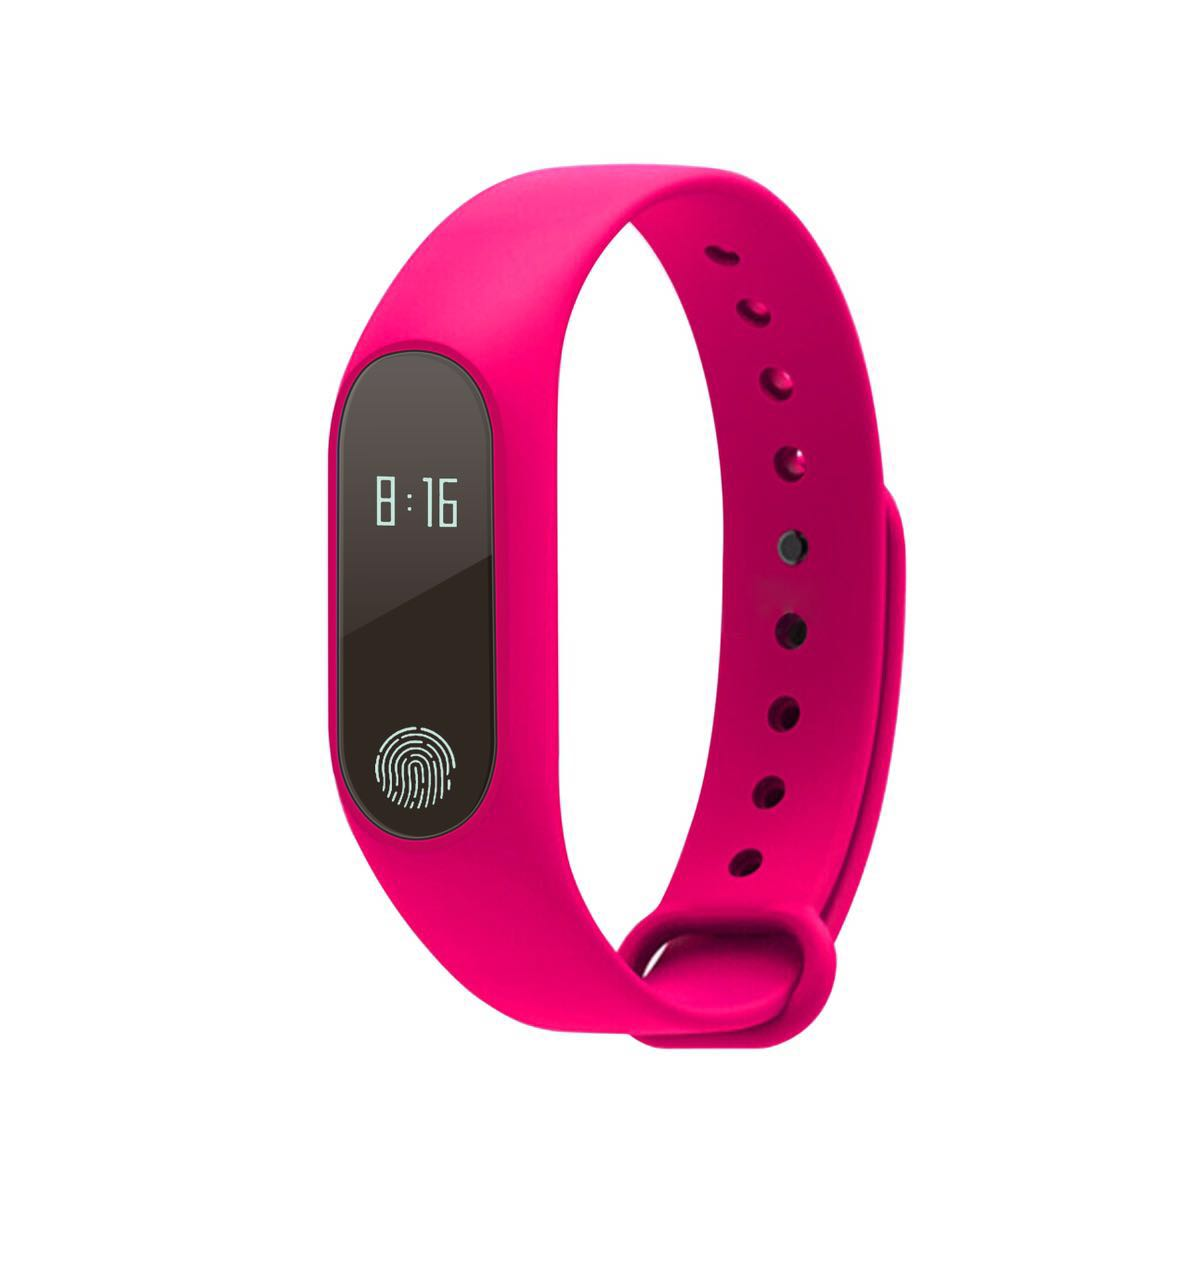 2019 New Smart Watch Women Heart Rate Monitor Sport Watches For Ios Android Relojes Para Mujer Womens Wristwatches